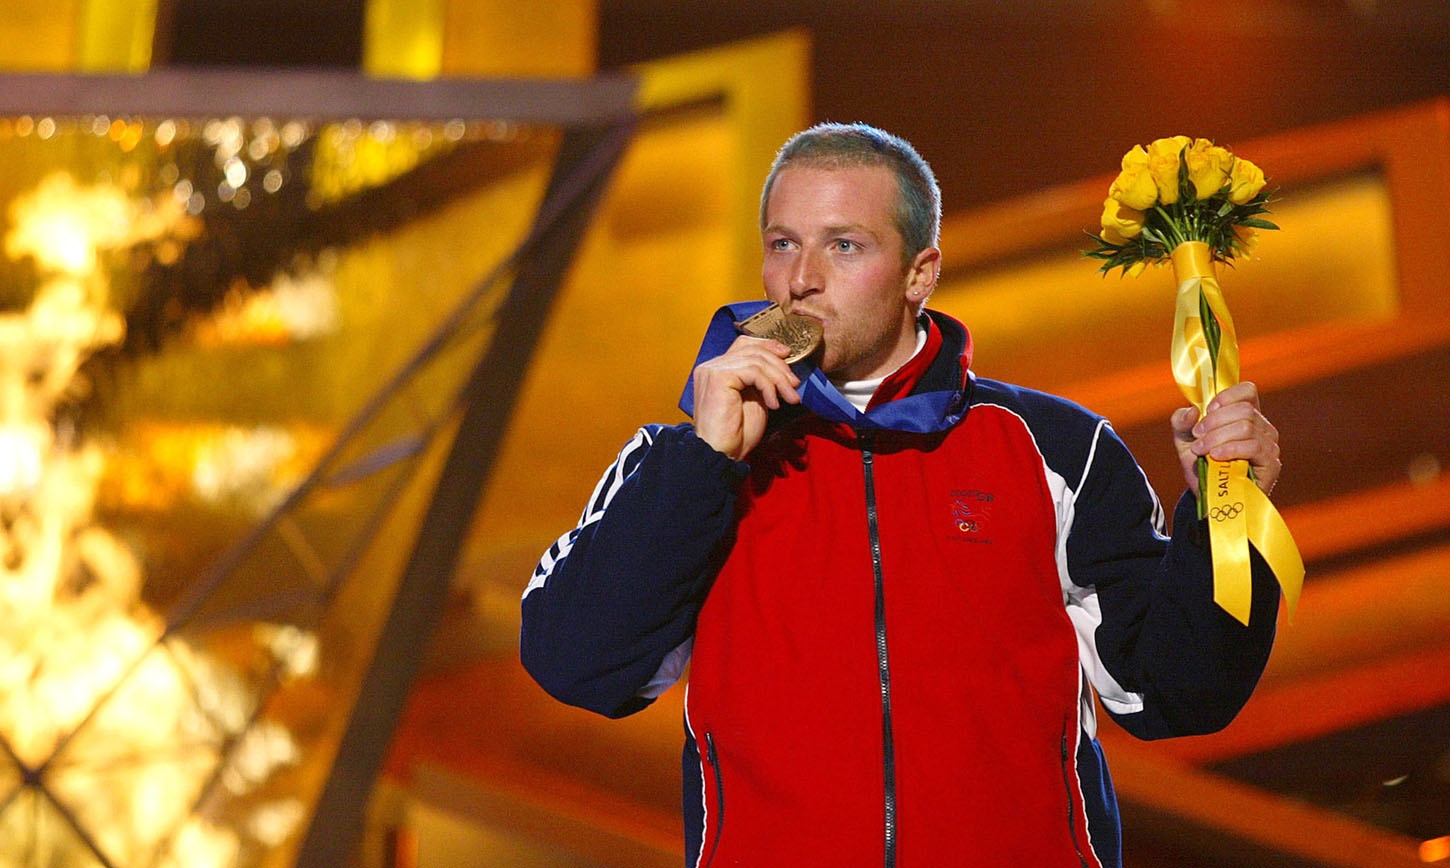 Olympic men's slalom bronze medalist Alain Baxter of Britain kisses his medal in front of the Olympic flame during medal ceremonies at the Salt Lake 2002 Winter Olympic Games, February 23, 2002. Jean-Pierre Vidal of France won Olympic gold in the slalom on Saturday ahead of silver medalist Sebastien Amiez of France and bronze medalist Baxter. REUTERS/Jim Bourg  KM/HB - RP3DRHYMMOAB